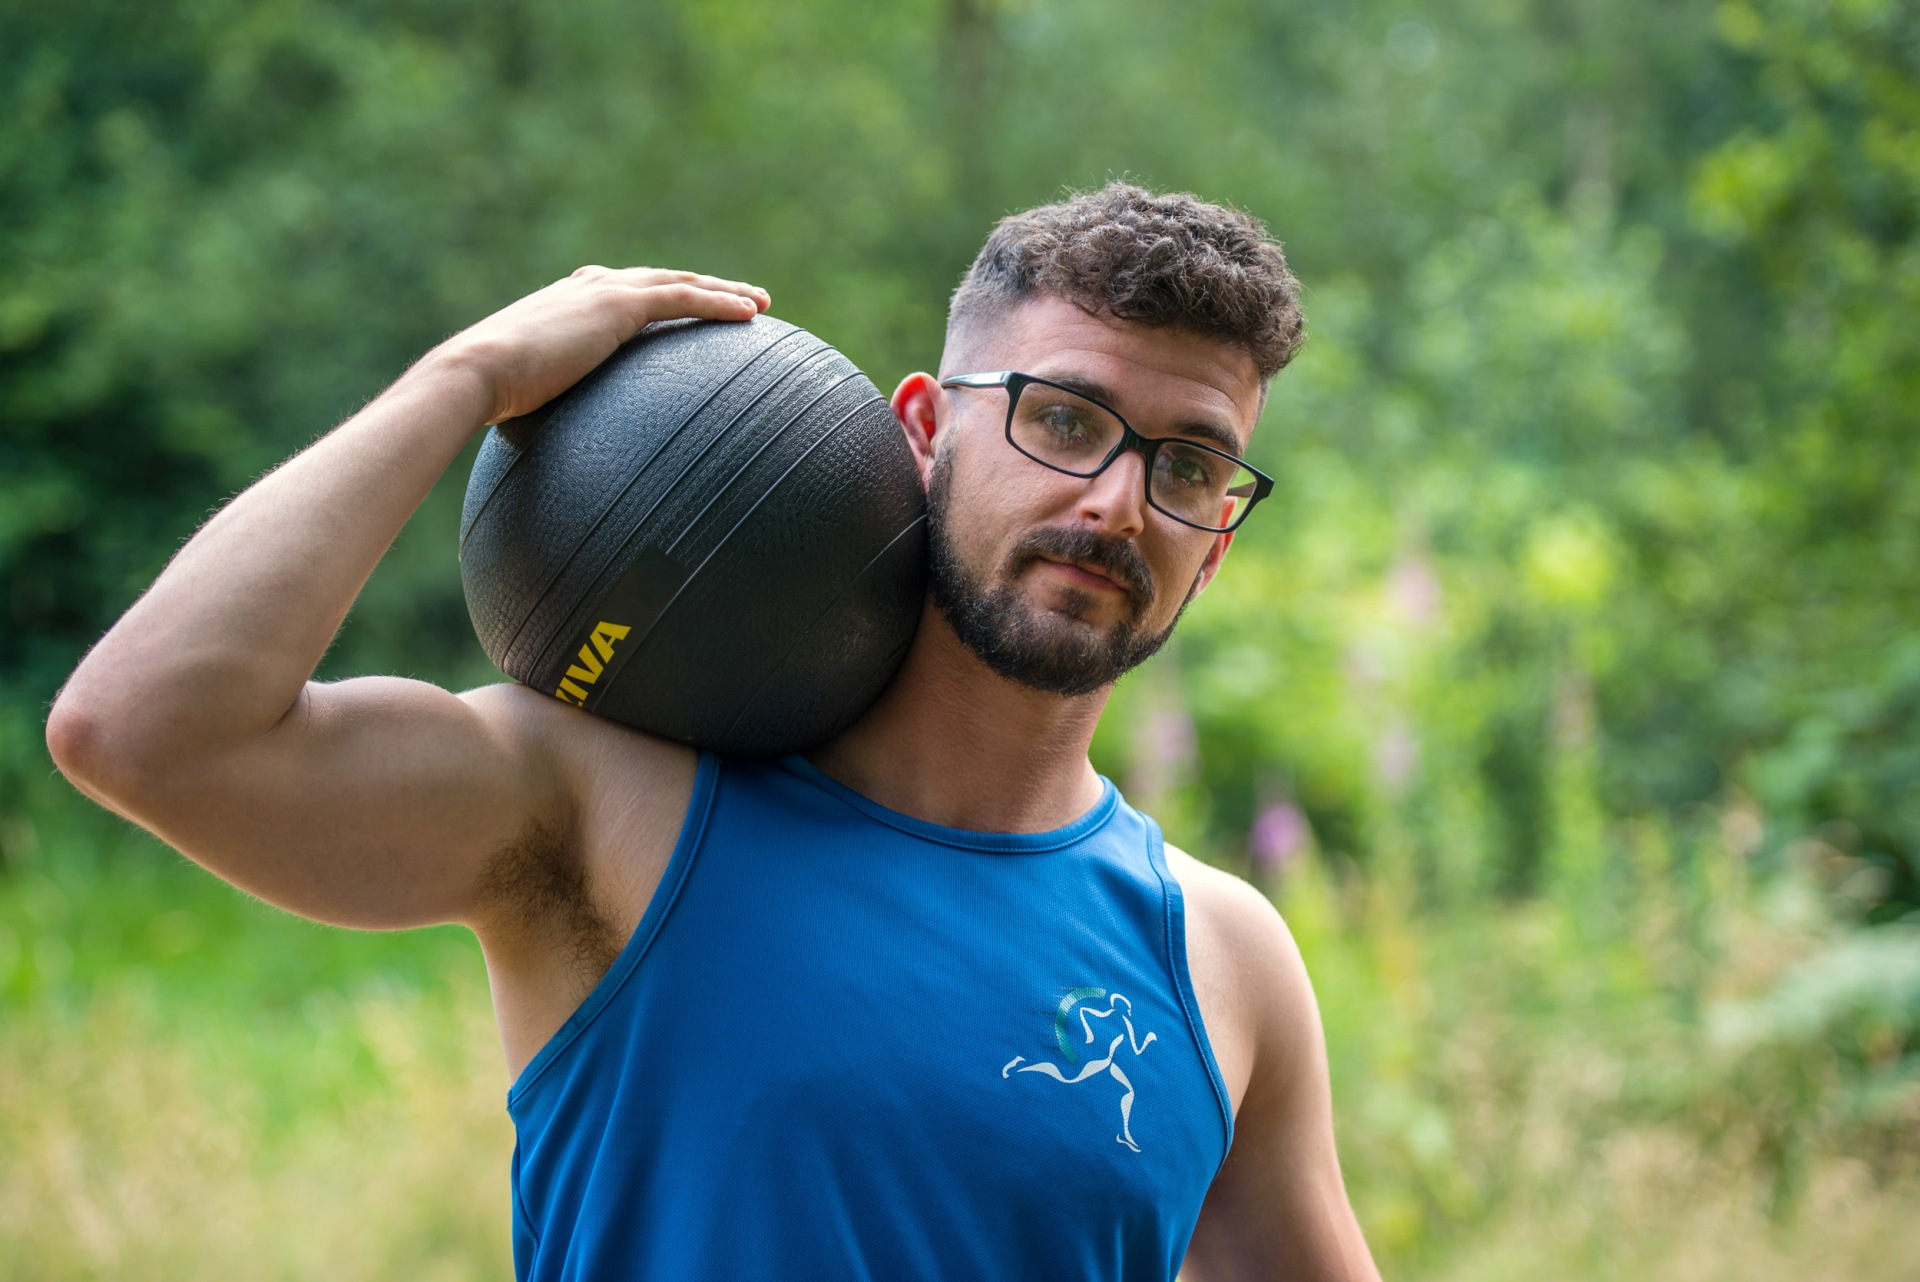 About Tristan Lane - Personal Trainer